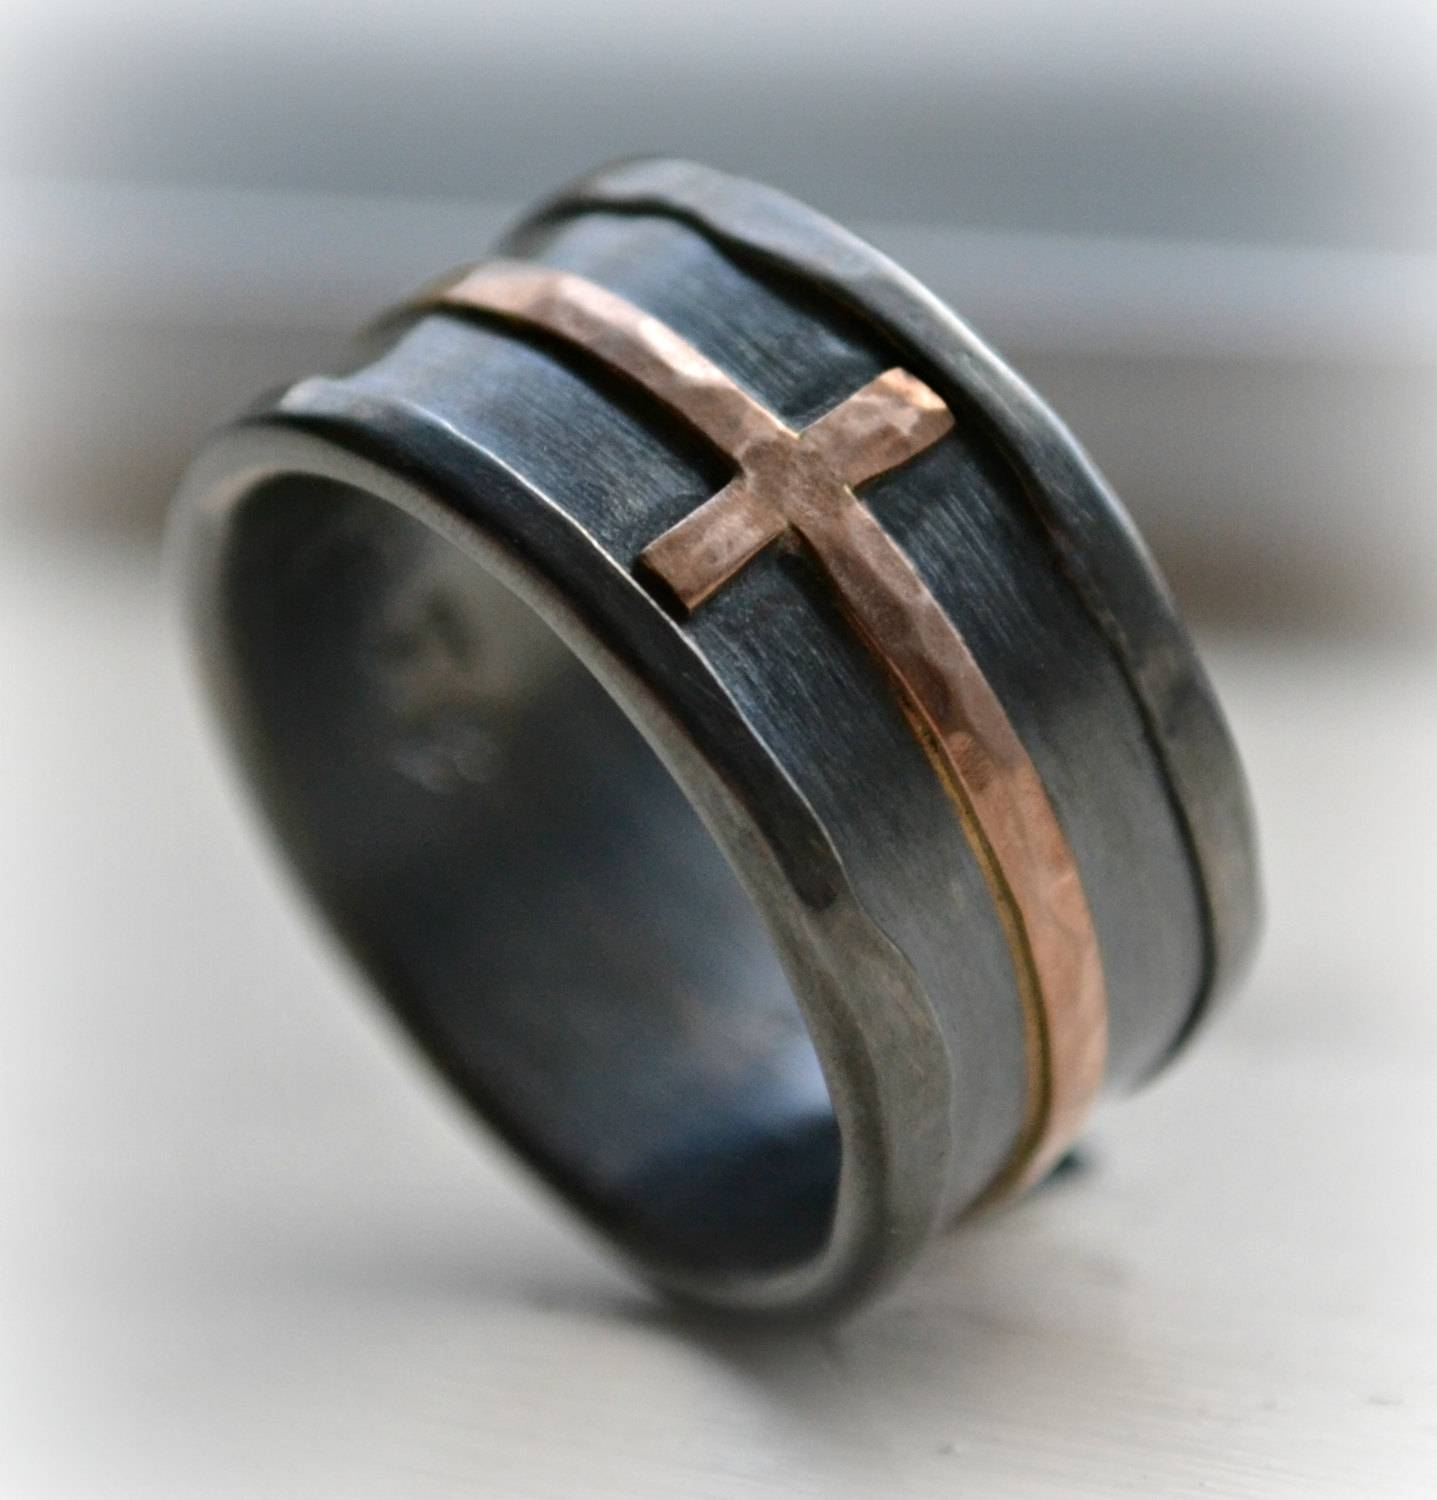 Mens Cross Wedding Band Rustic Hammered Cross Ring Oxidized In Pertaining To Cross Wedding Bands (Gallery 8 of 15)